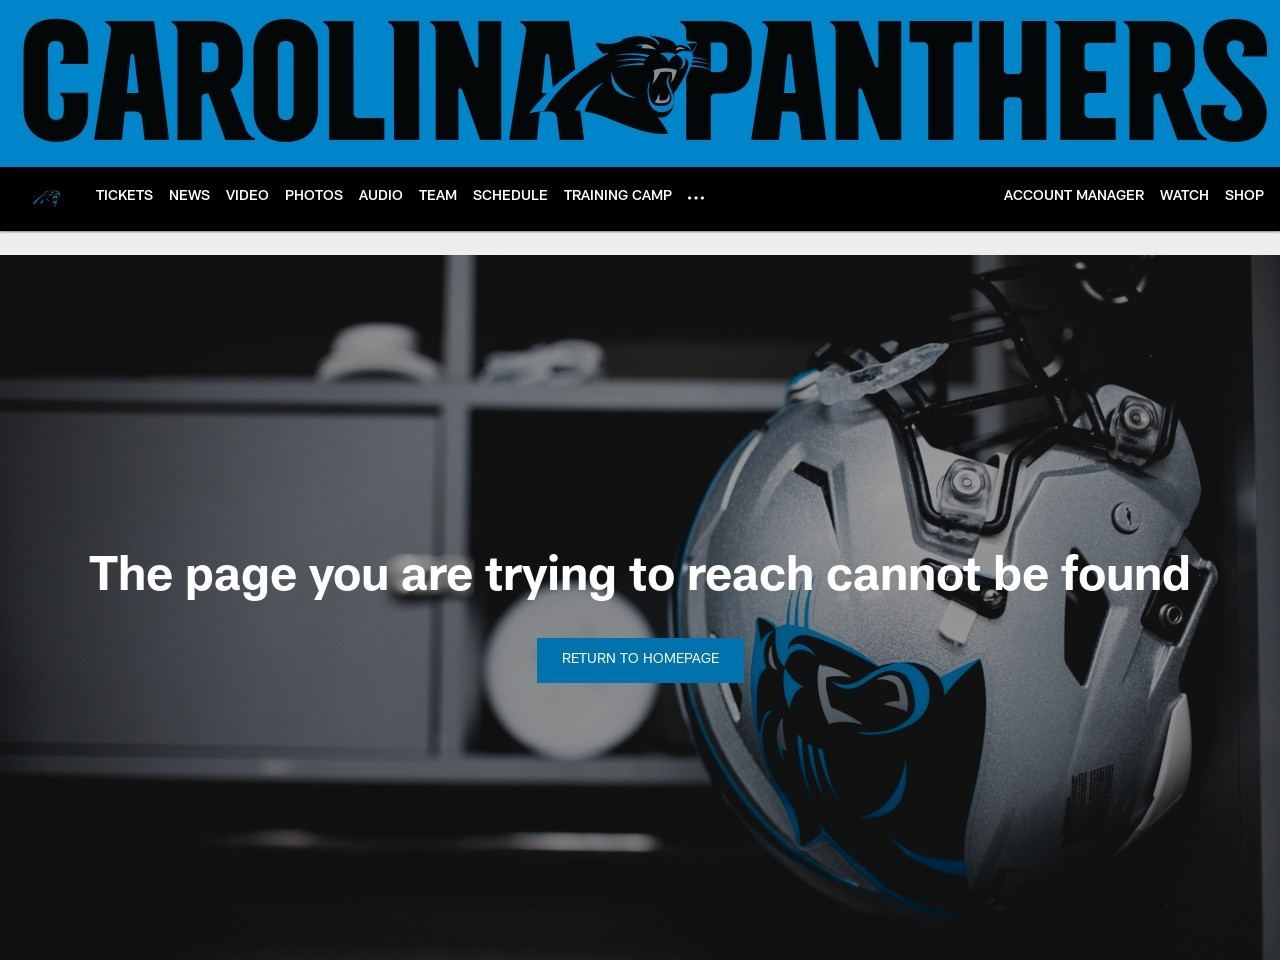 Panthers seamlessly transition from McDermott to Wilks